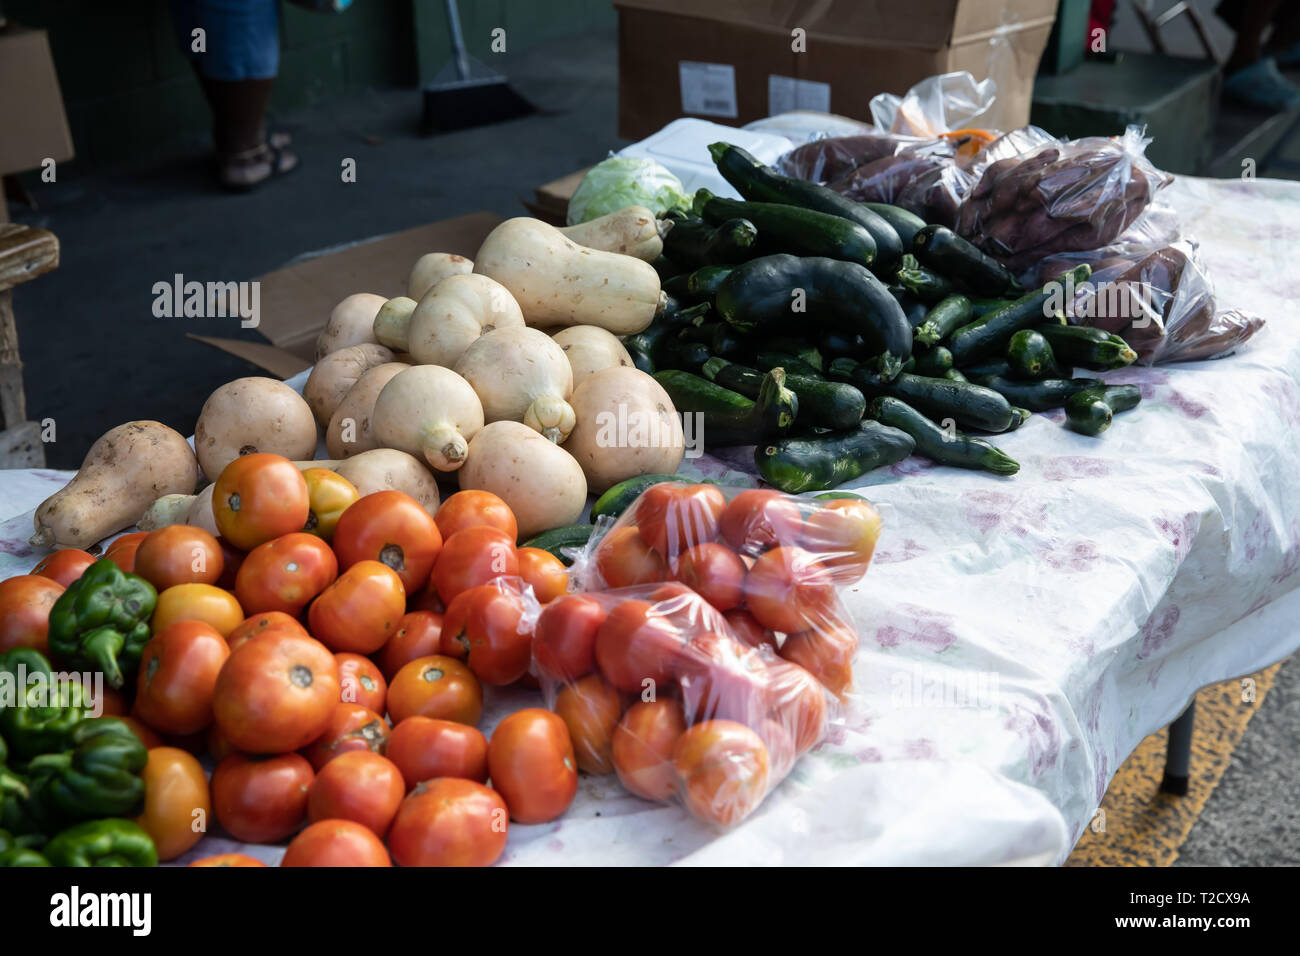 Fruit and Vegetable stall in Saint John's, Capital of Antigua and Barbuda Stock Photo